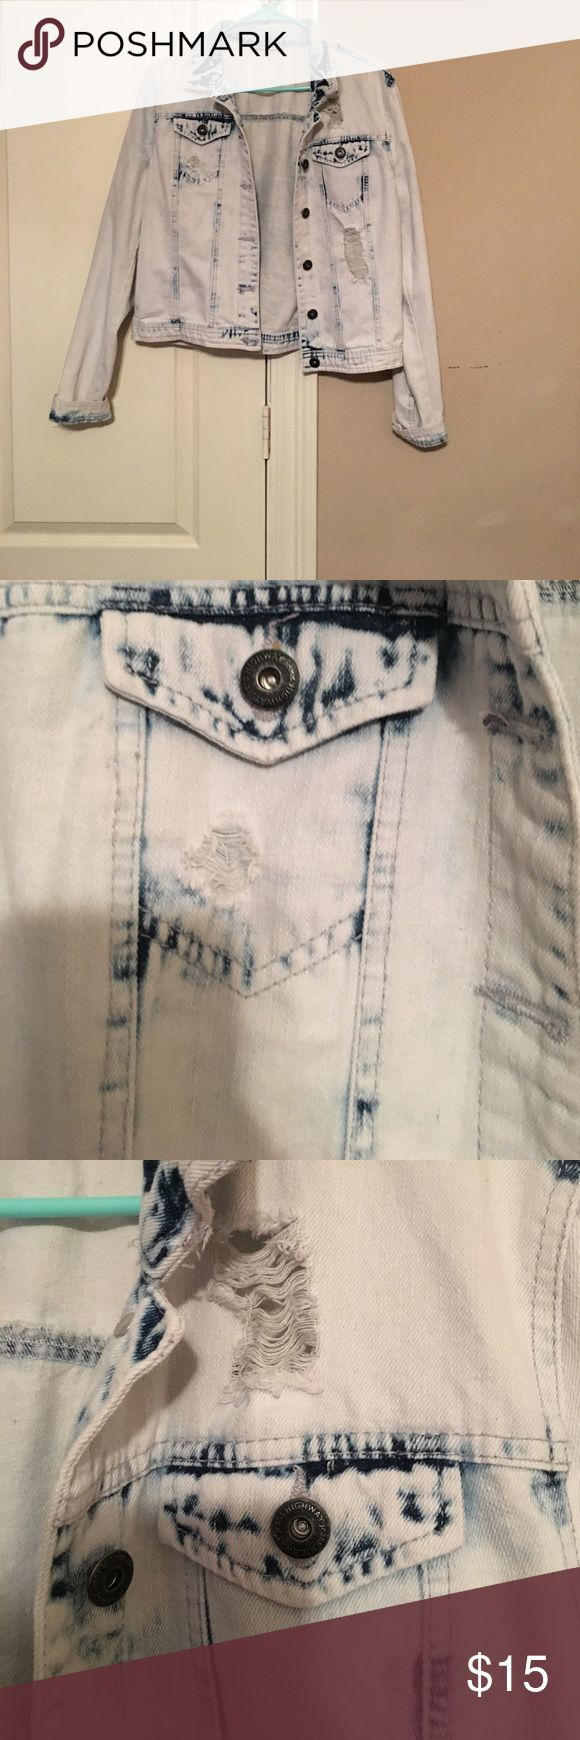 Acid Washed Jean Jacket Minimal wear . Great condition . Runs a bit small , size Large fits more like a Medium Highway Jeans Jackets & Coats Jean Jackets